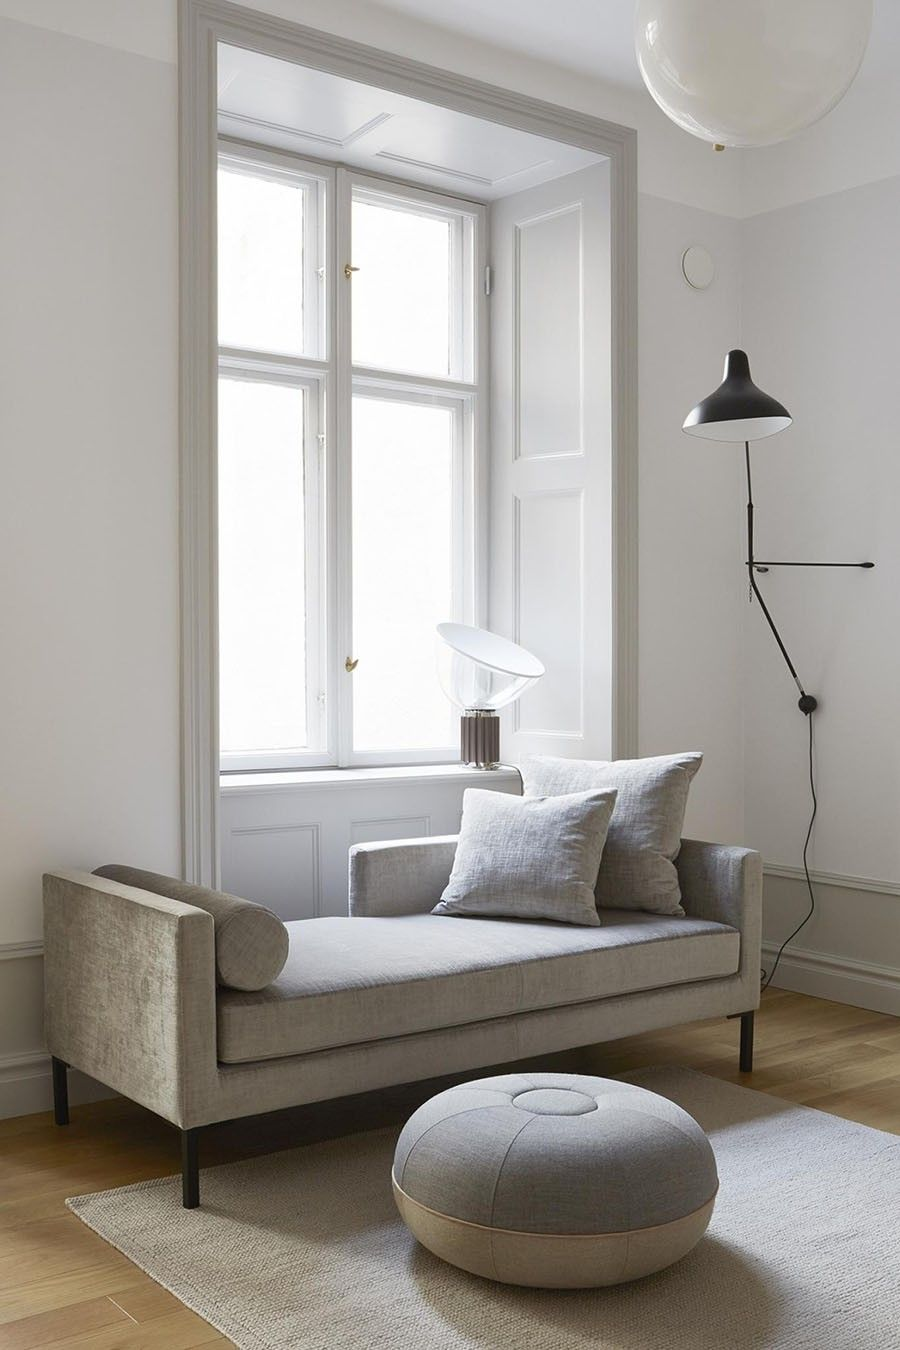 Superior Fully Renovated, This Delightful Century Apartment In Stockholm Has Been  Impeccably Styled By Josefin Hååg For Fantastic Frank. The Small,  Multi Tasking ...